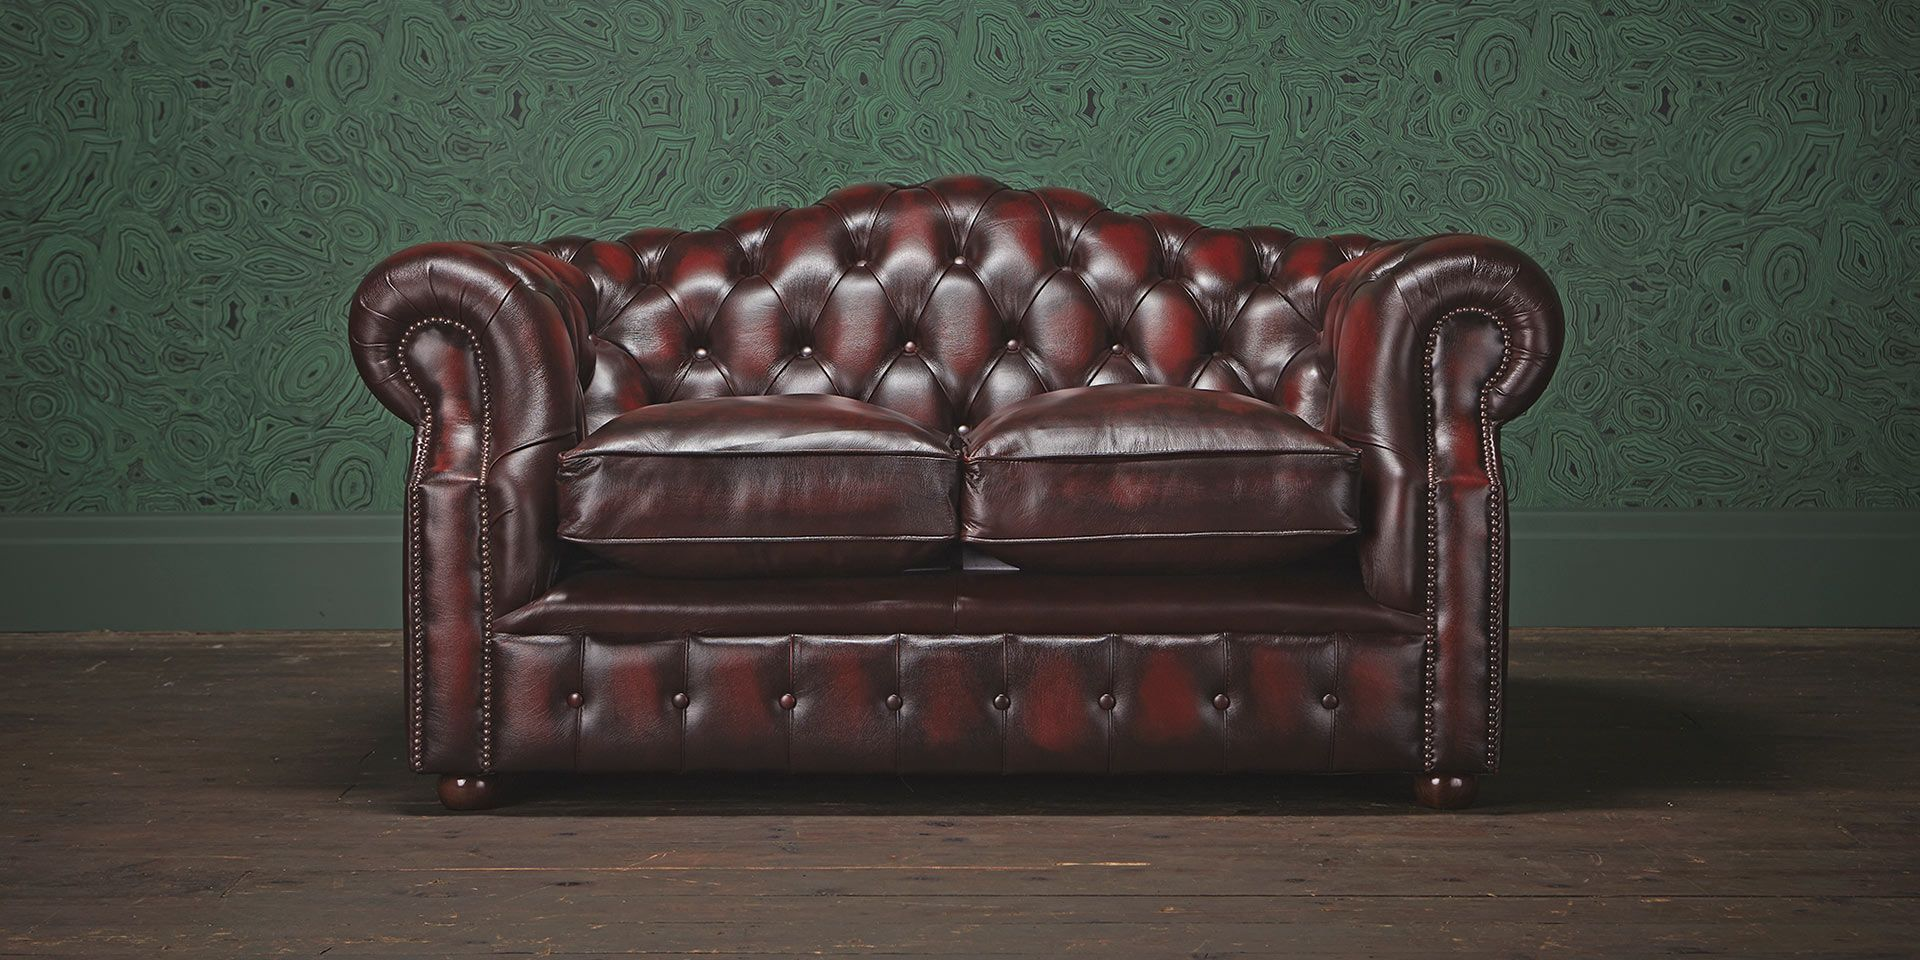 Man Cave Oxford : Oxford chesterfield sofa chesterfields of england